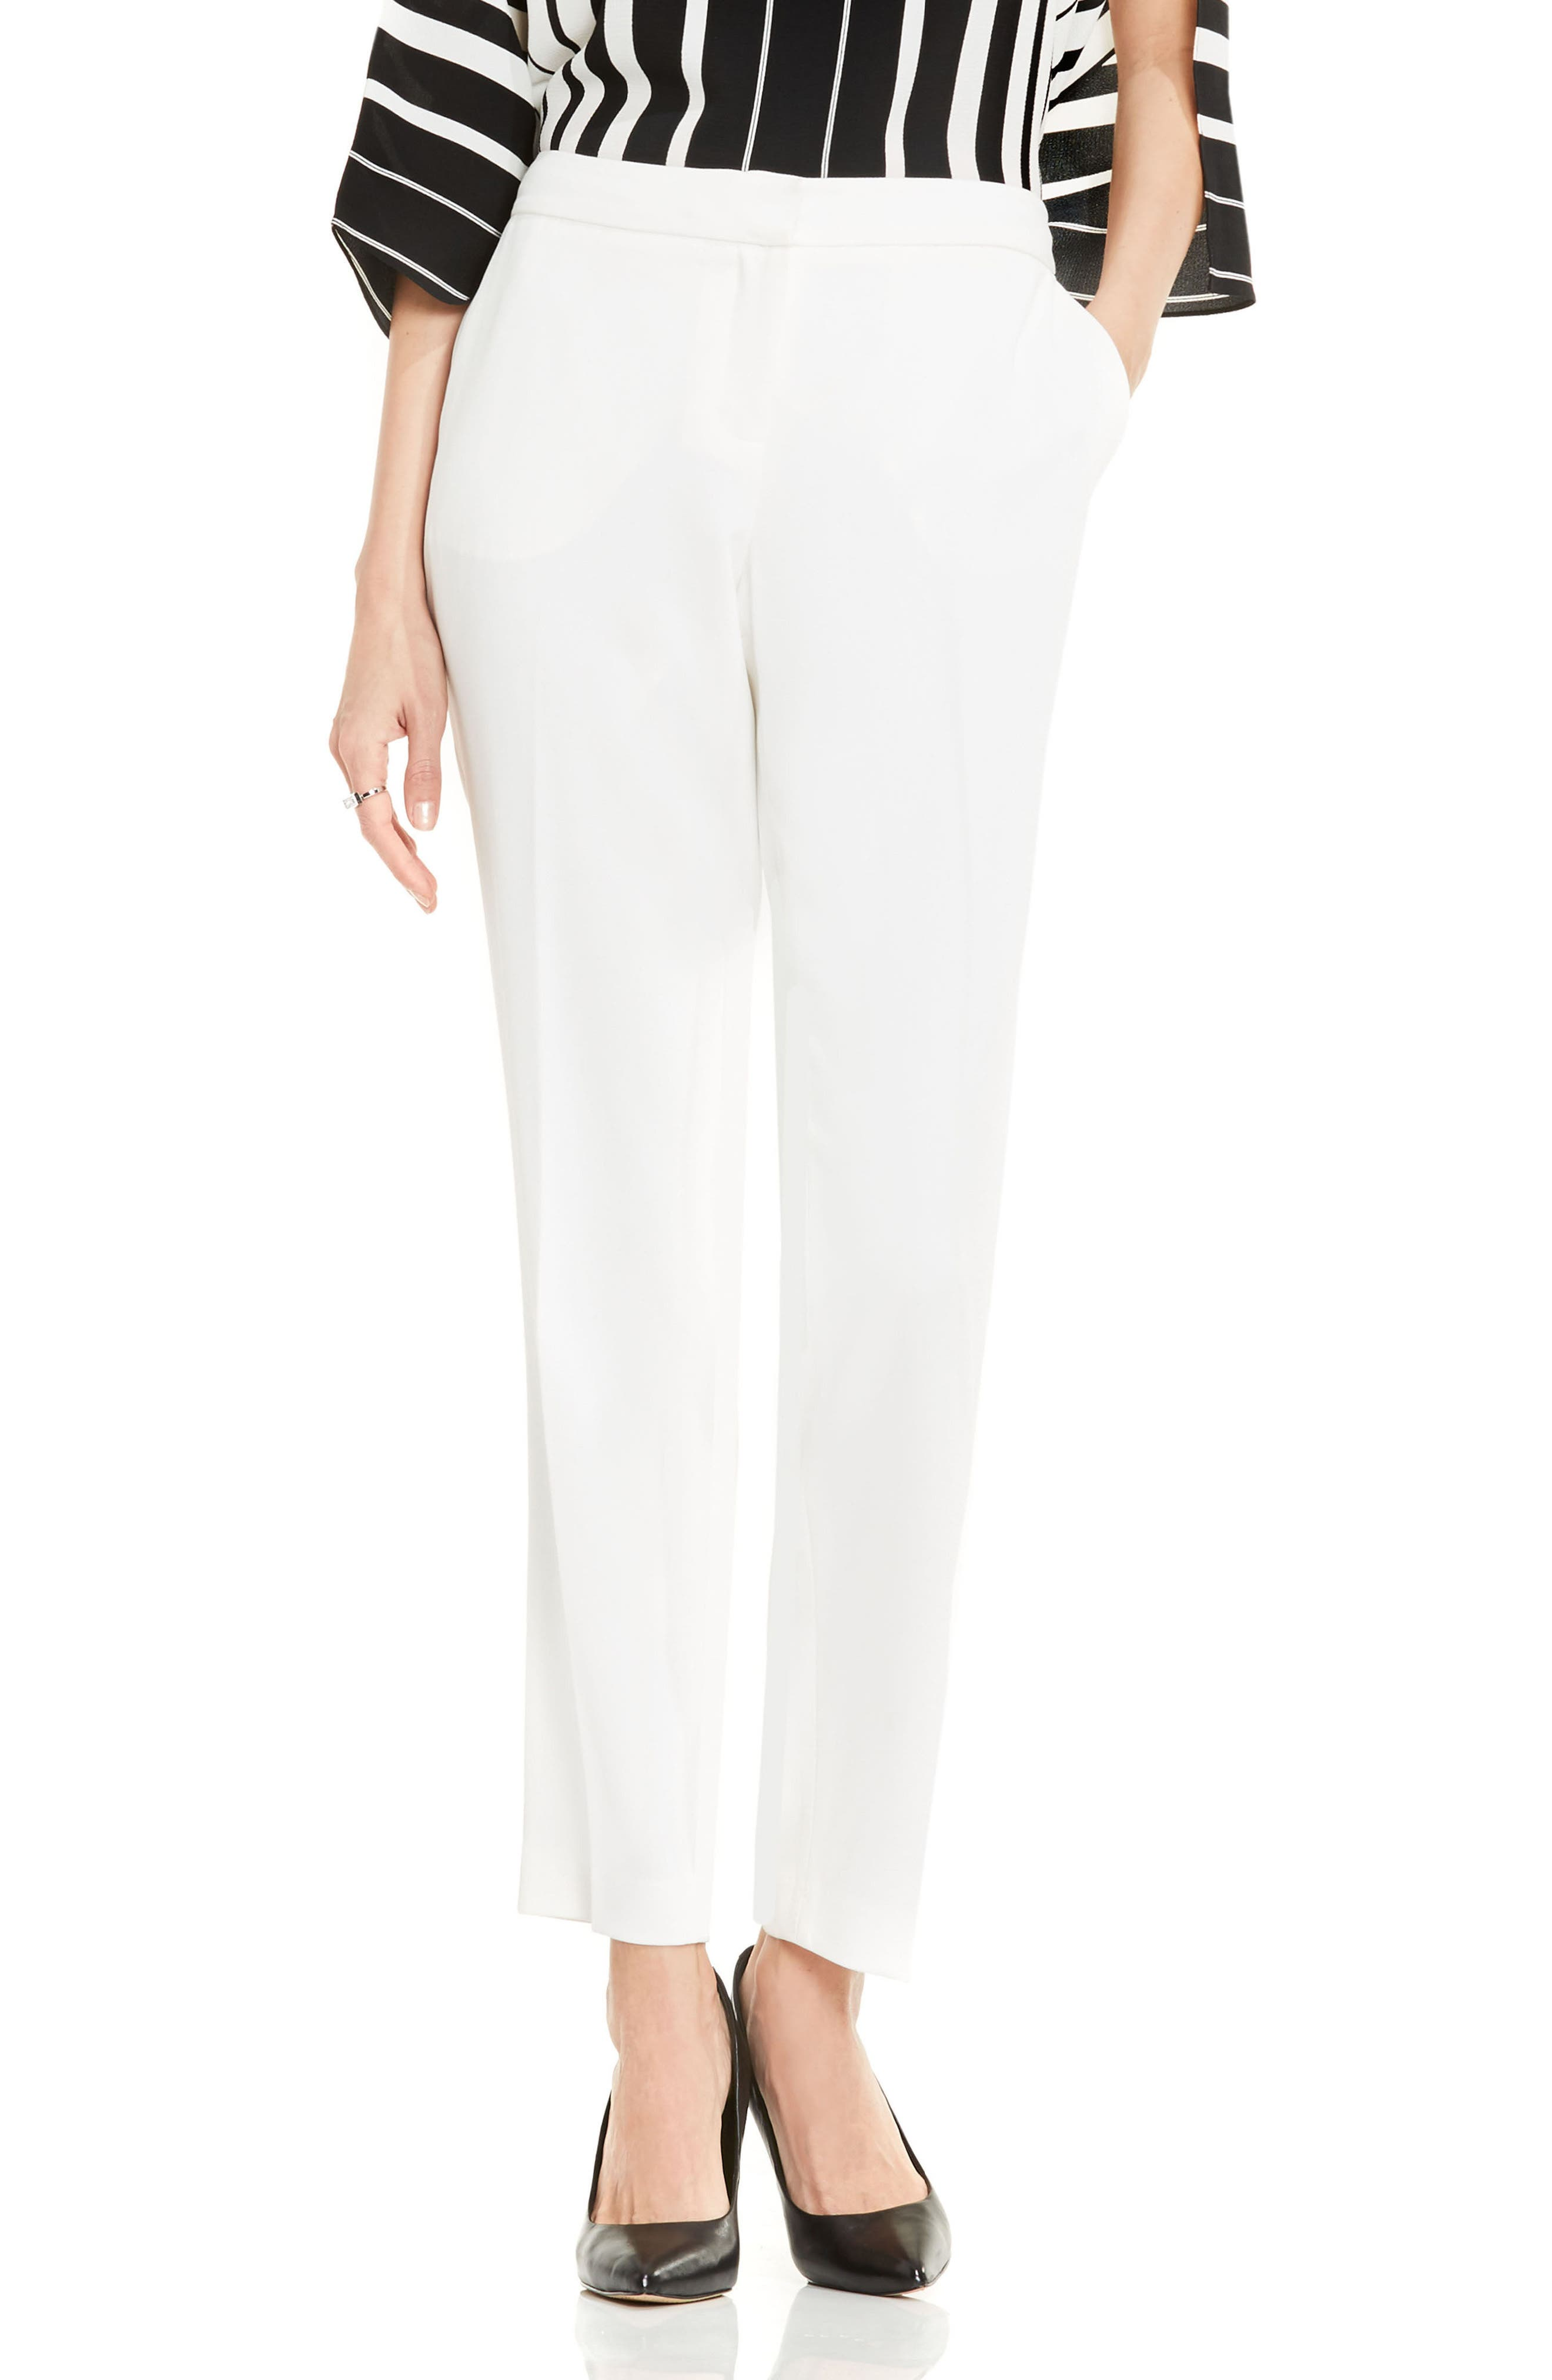 Alternate Image 1 Selected - Vince Camuto Textured Skinny Ankle Pants (Regular & Petite)